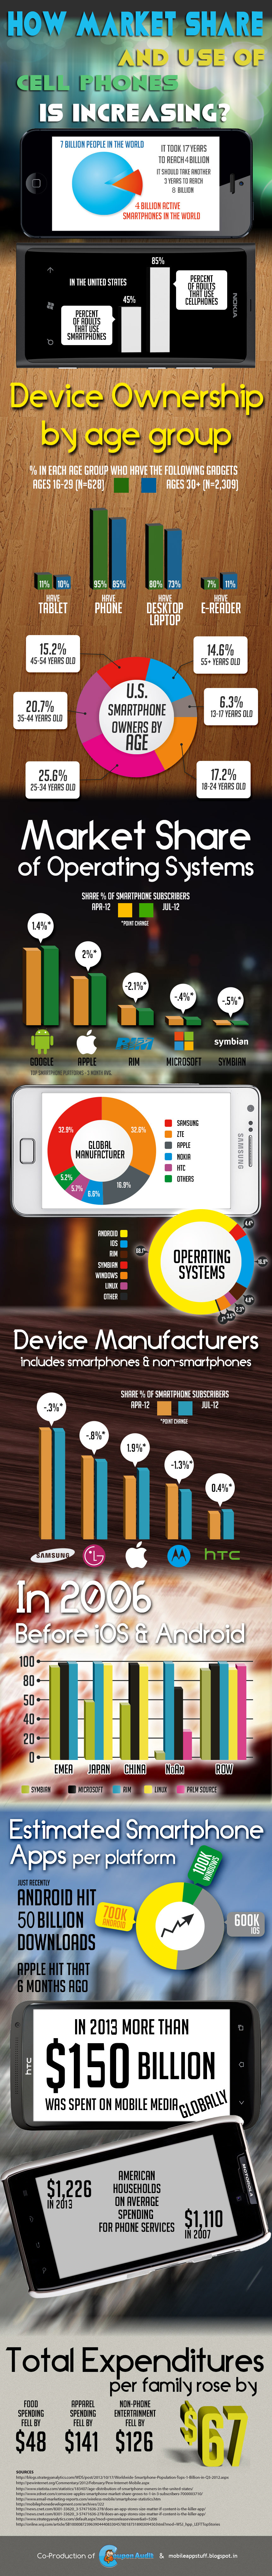 Mobile Market Share and Users Demographics